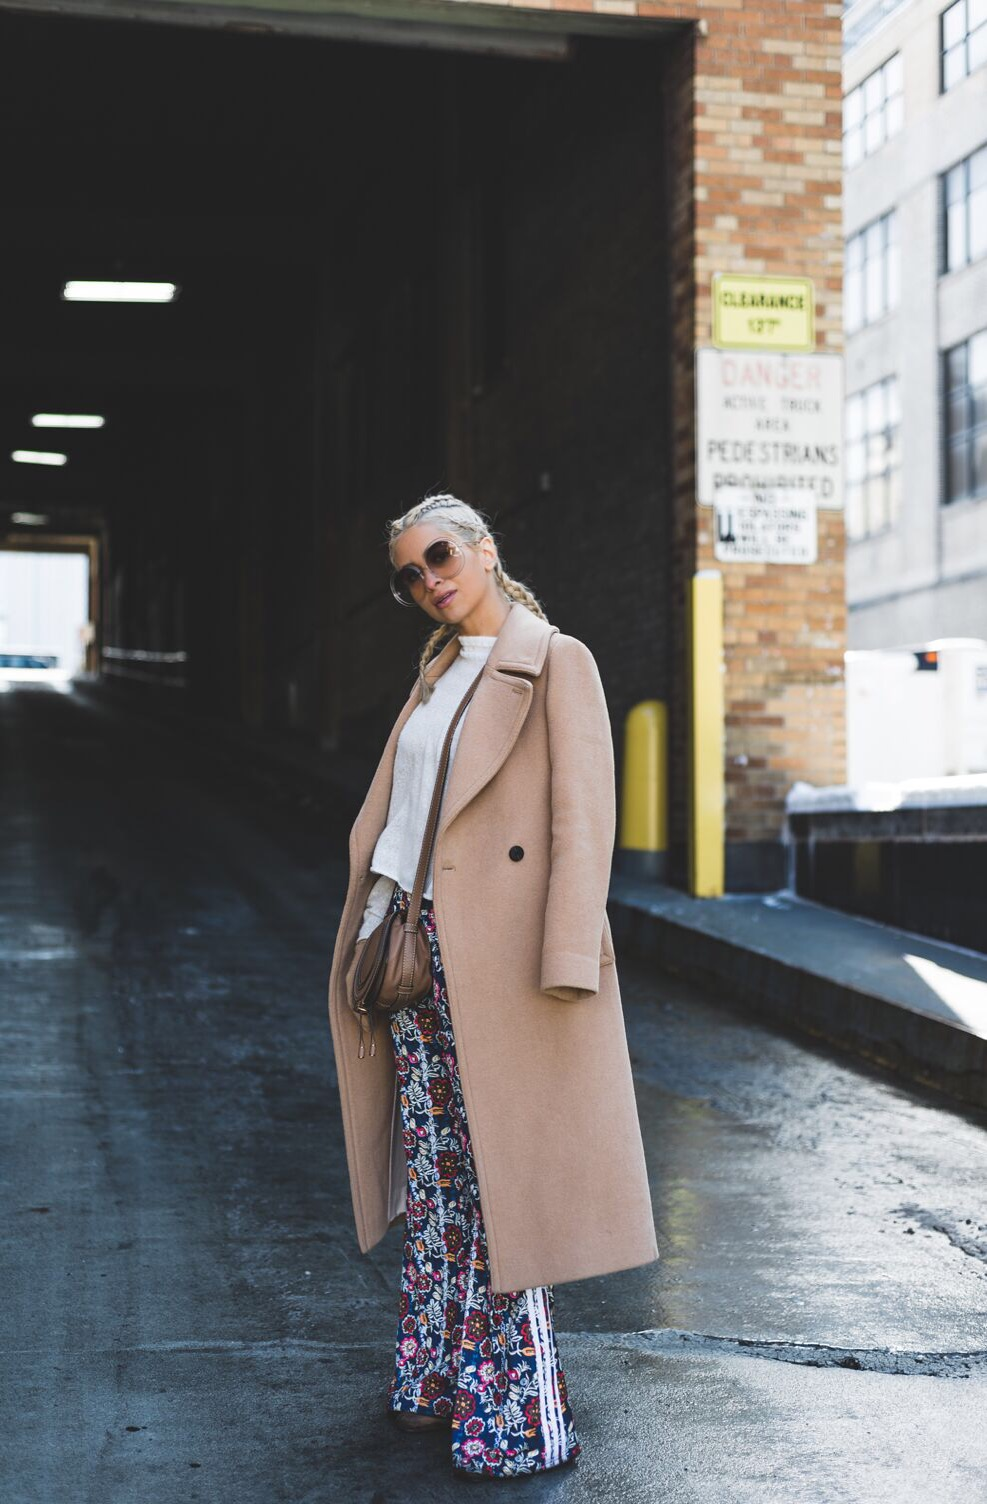 athleisure_adidas pants_printed adidas pants_chloe sunglasses_braided hair_corn rows_tan peacoat_blonde lob_blonde blogger